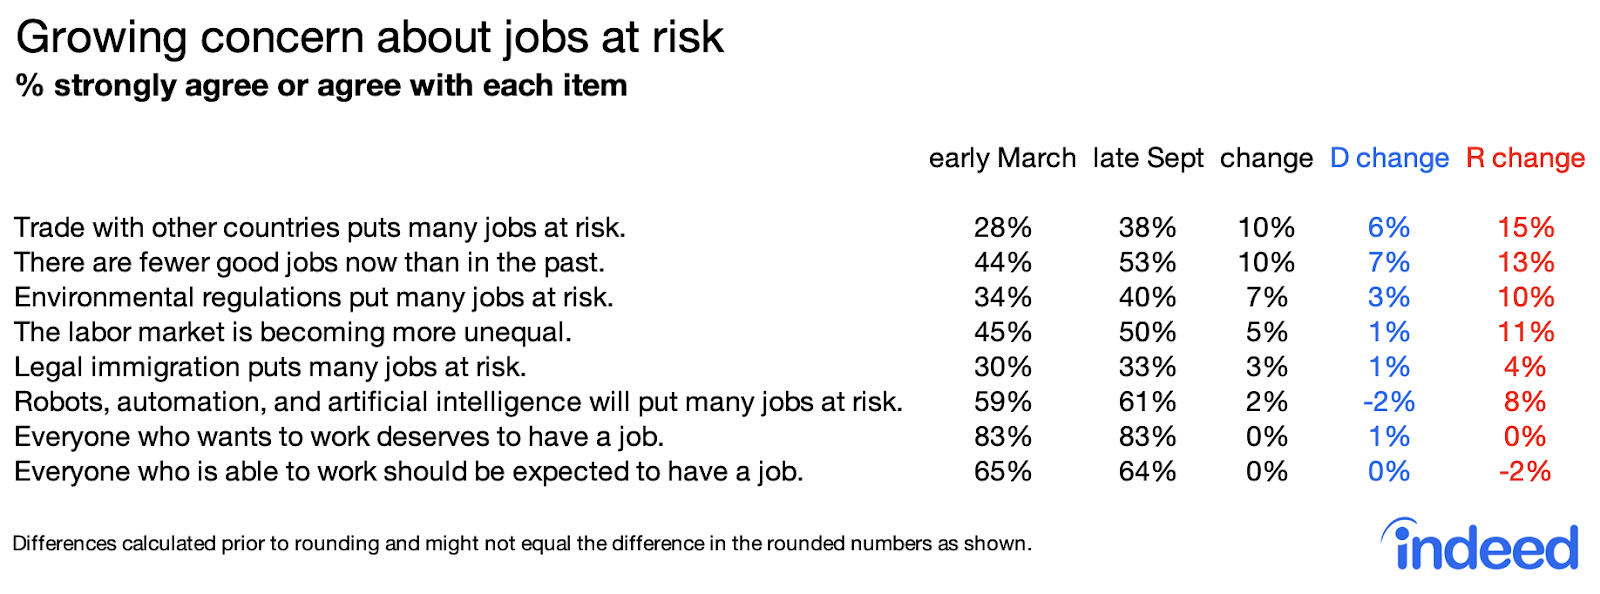 Table showing growing concern about jobs at risk among americans